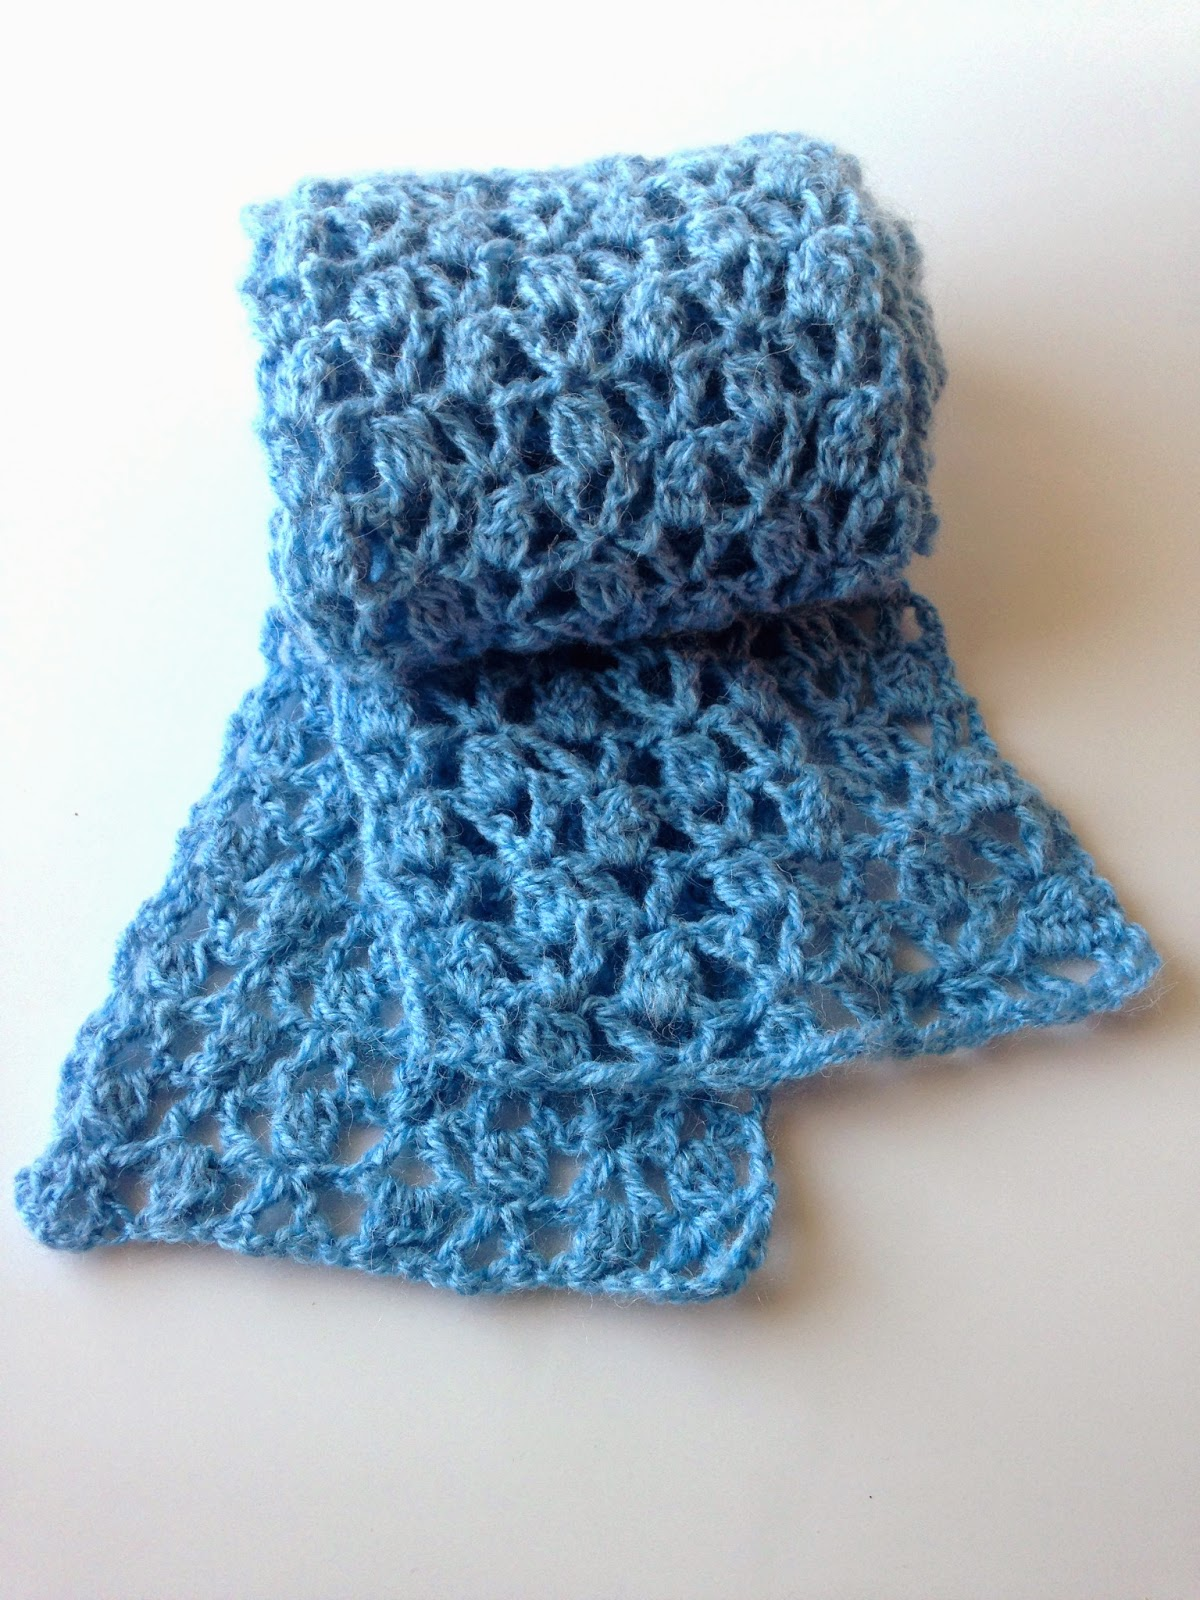 Crocheting Lace Patterns : Little Monsters: Lace Cluster Scarf: A Free Crochet Pattern